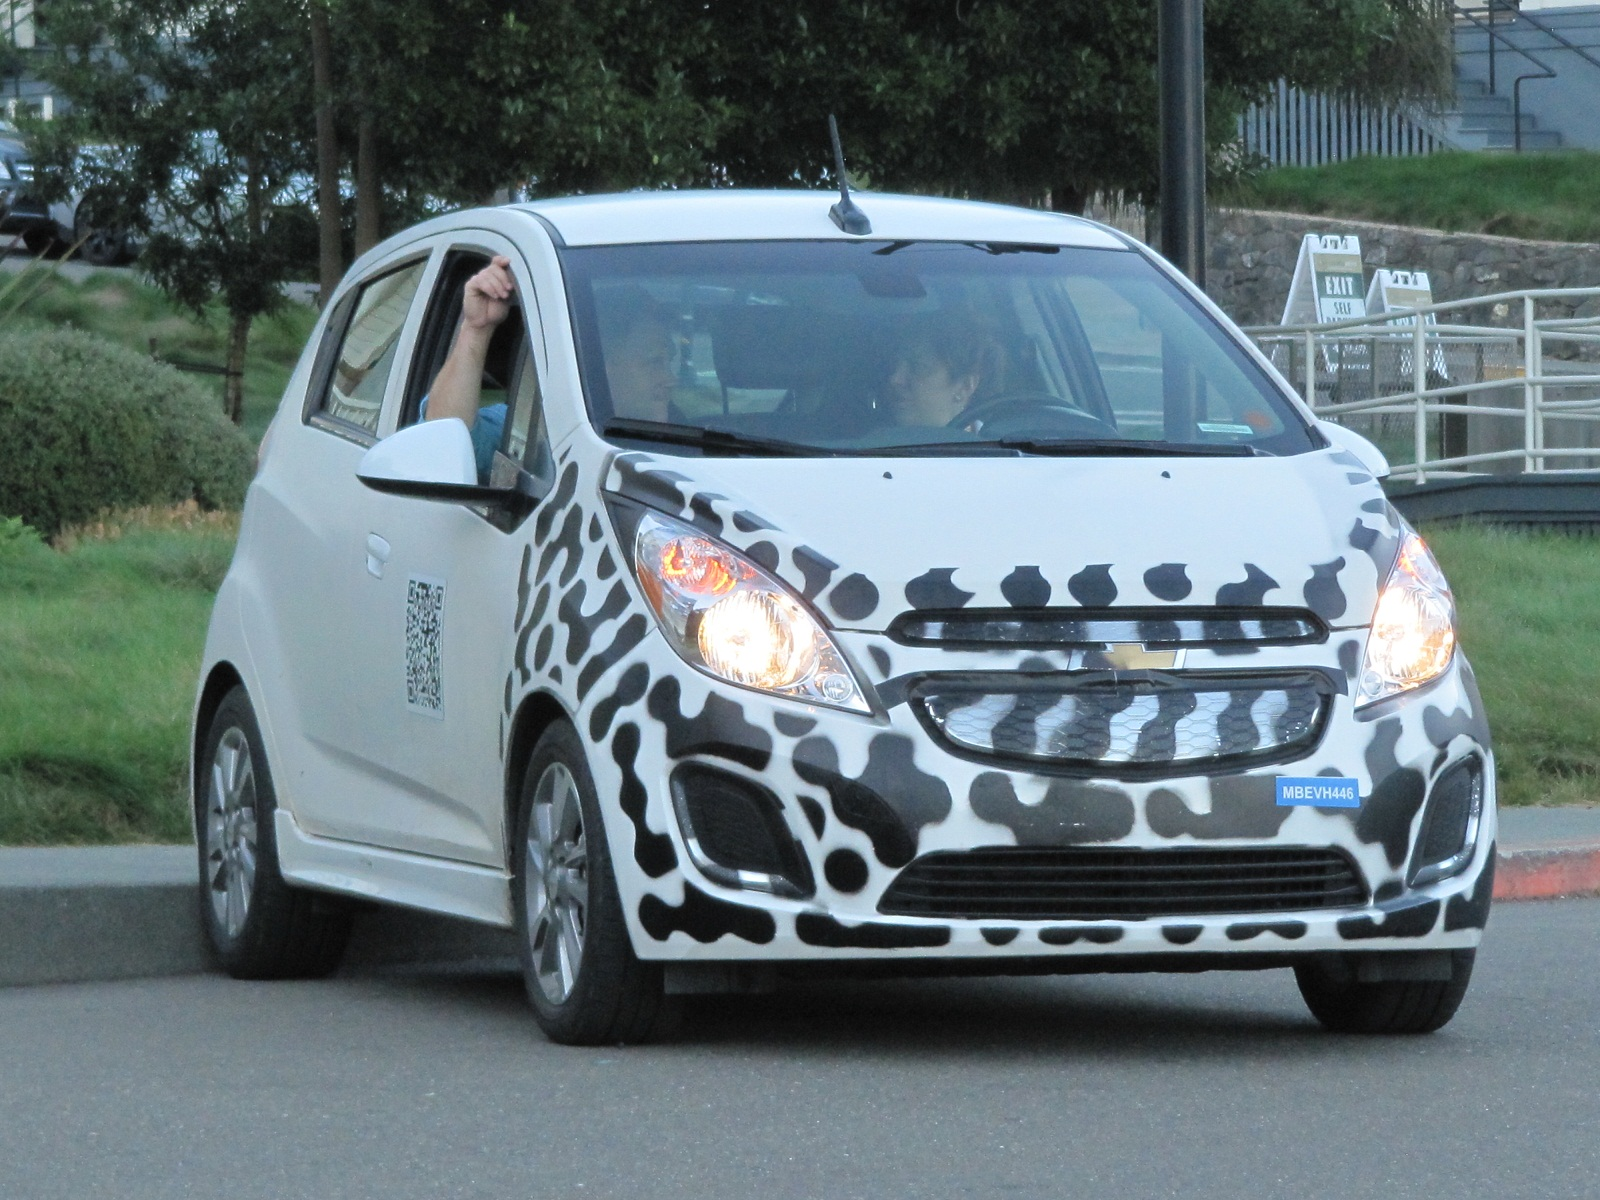 2014 Chevy Spark EV Prototype Electric Car First Drive